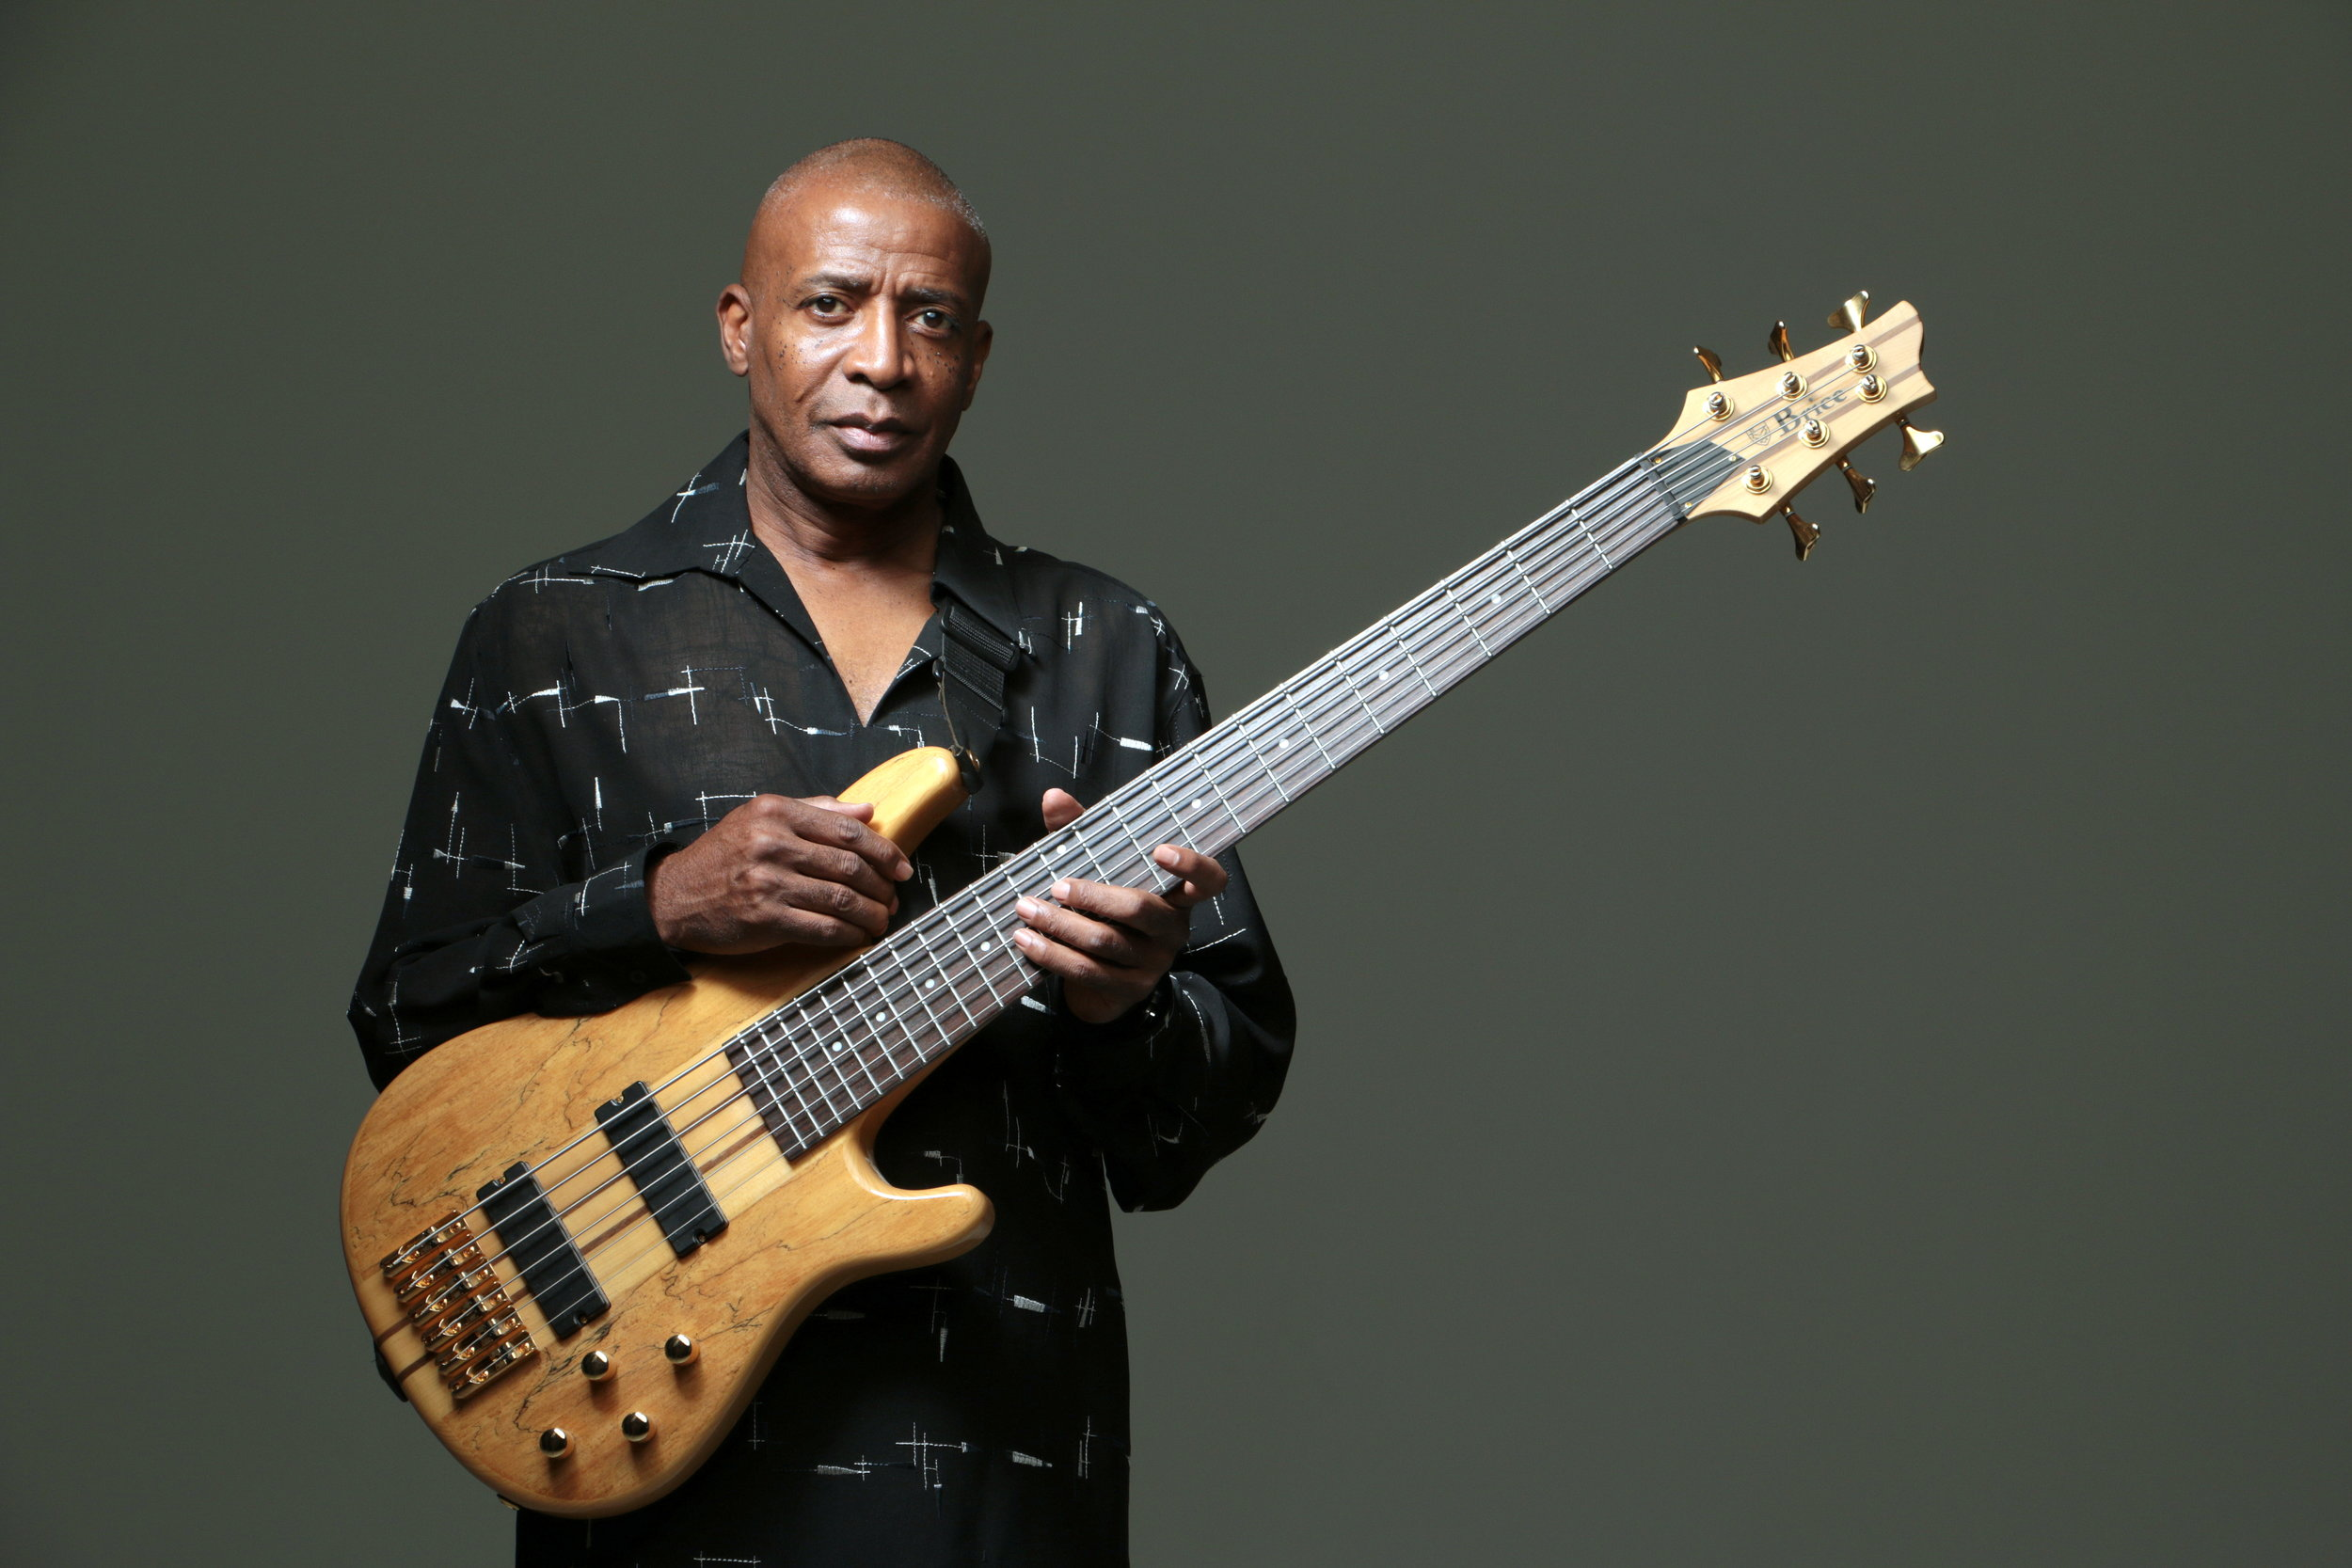 Musican posing with his bass guitar